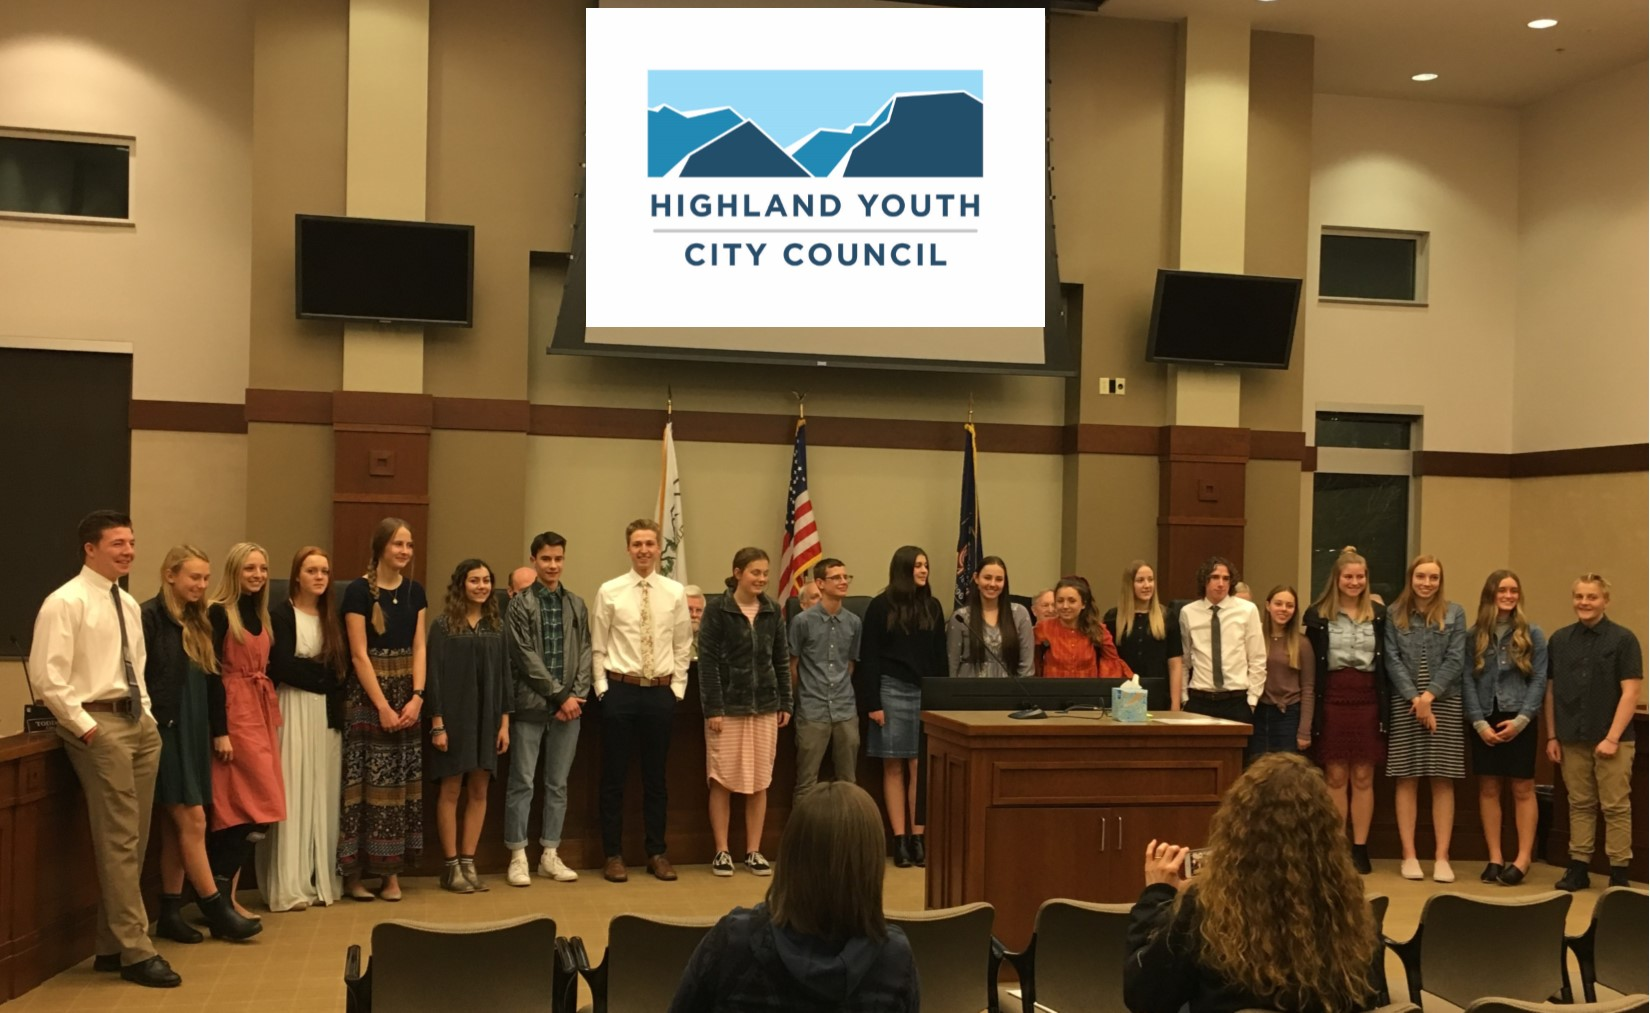 Youth City Council swearing in for website